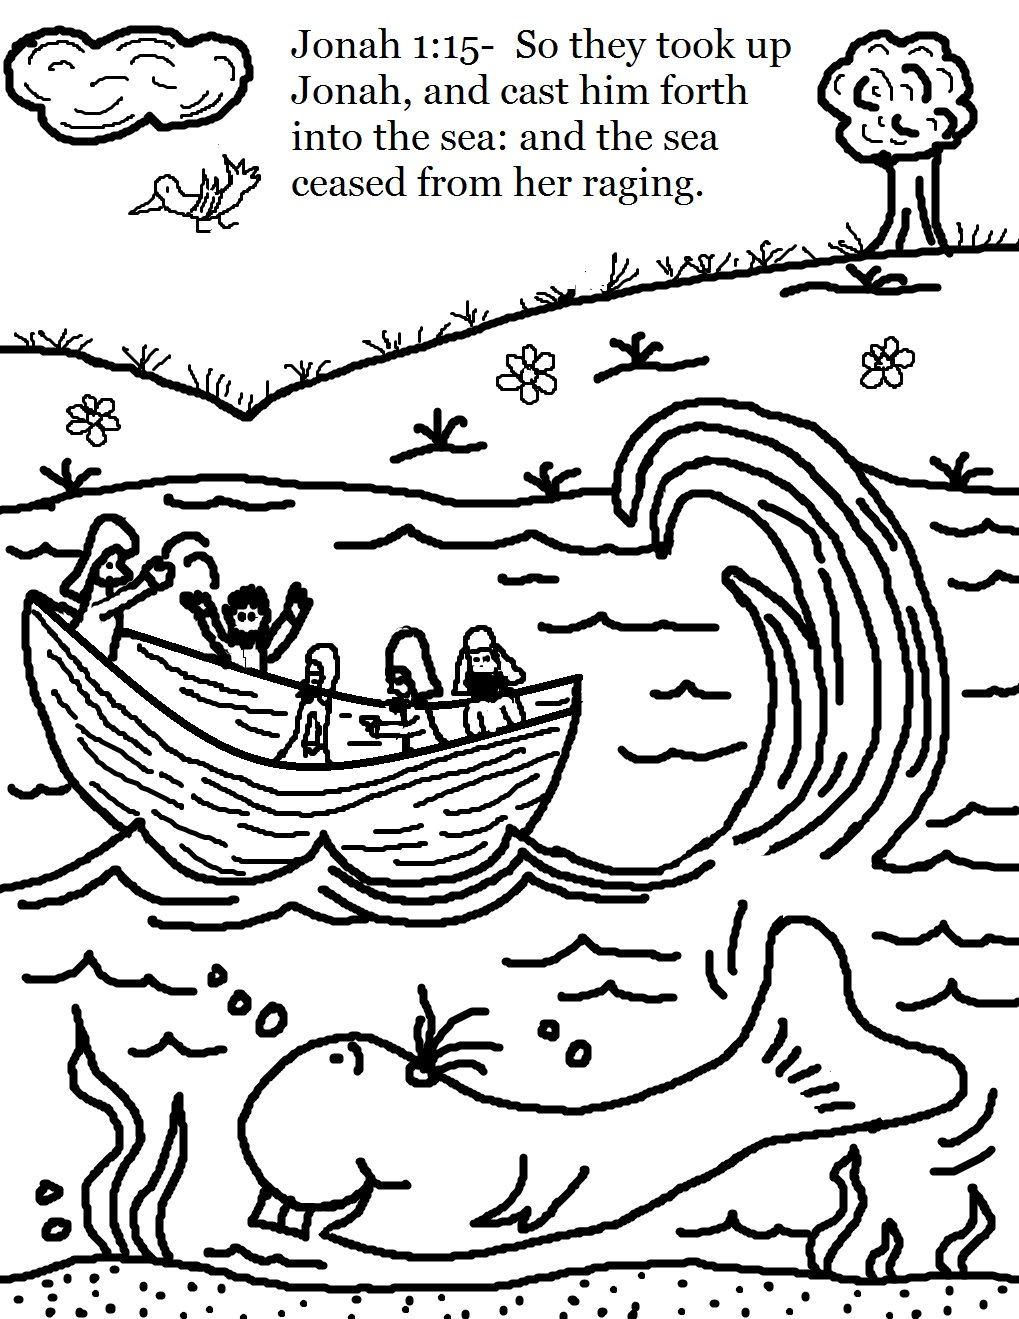 100 ideas christian coloring pages jonah on emergingartspdx com